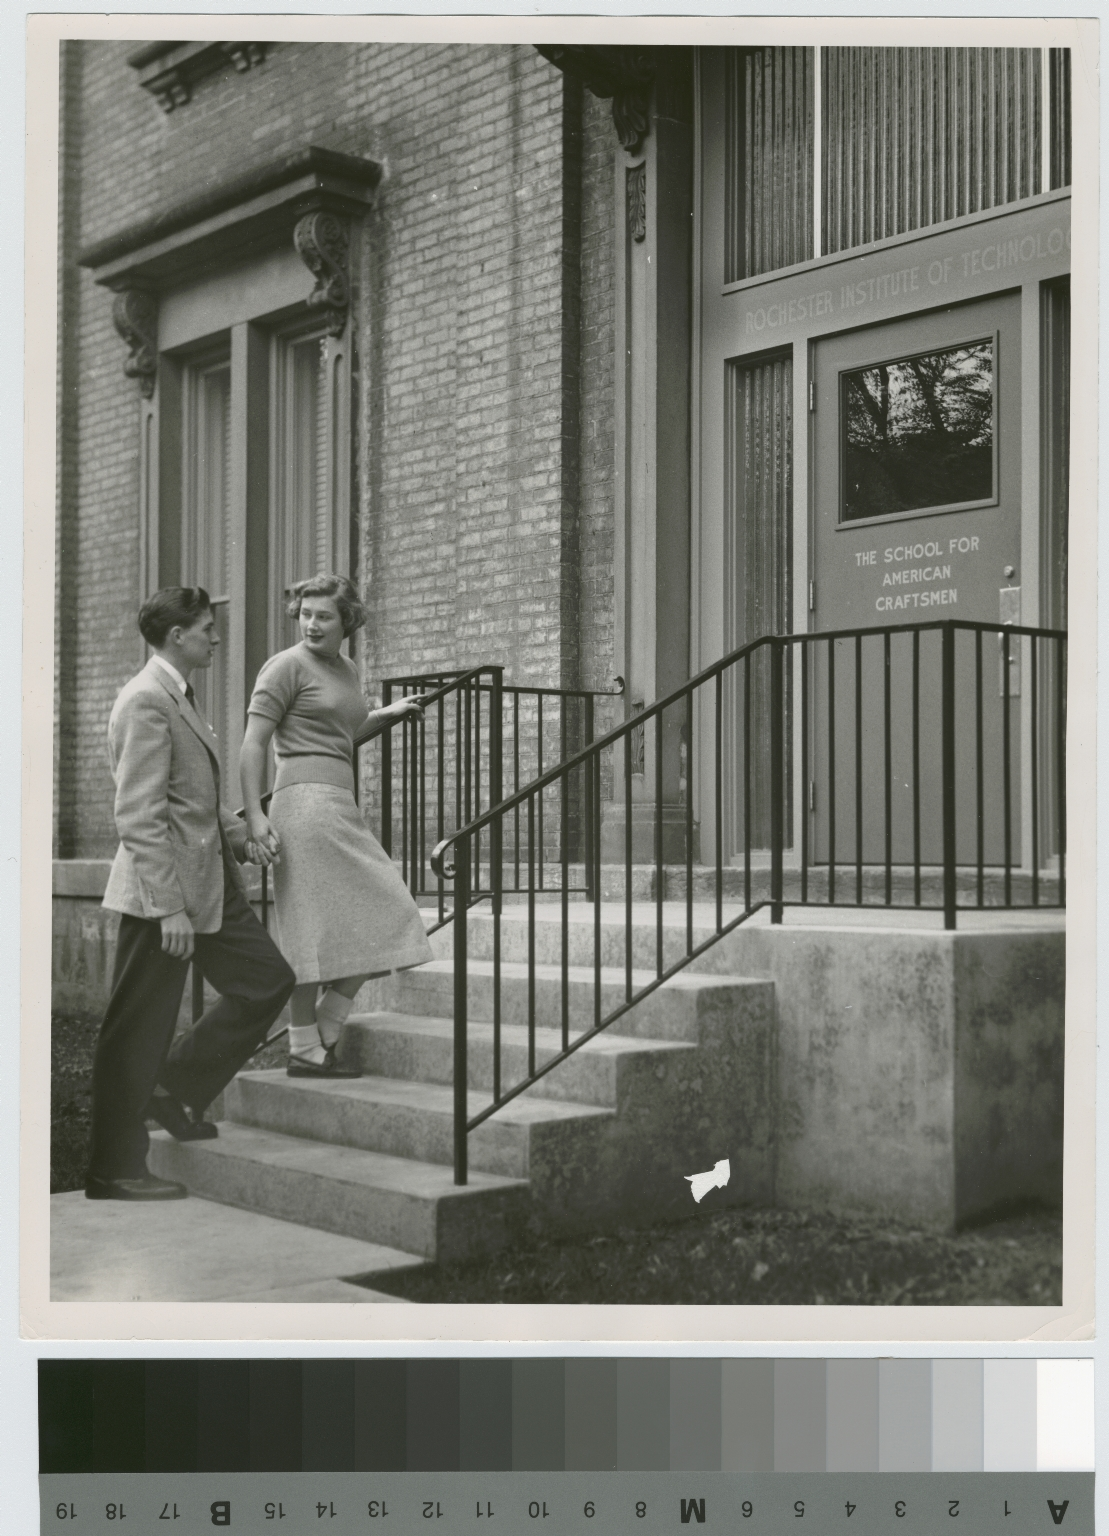 Unidentified students, entrance, School for American Craftsmen